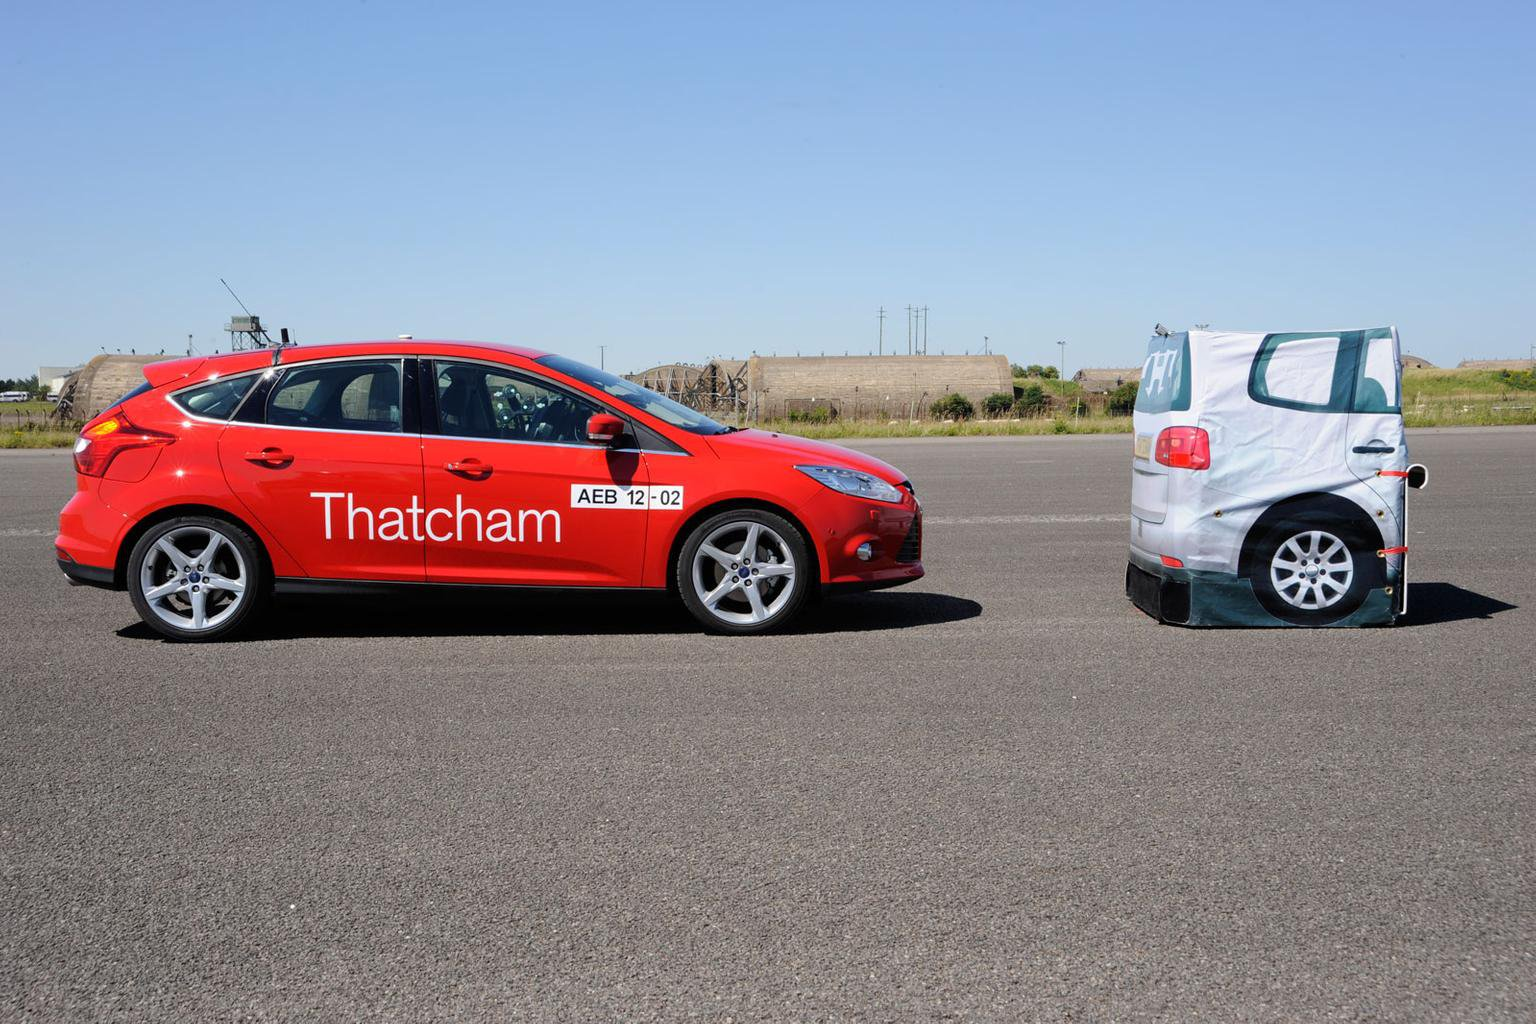 Make auto-braking standard, says Thatcham